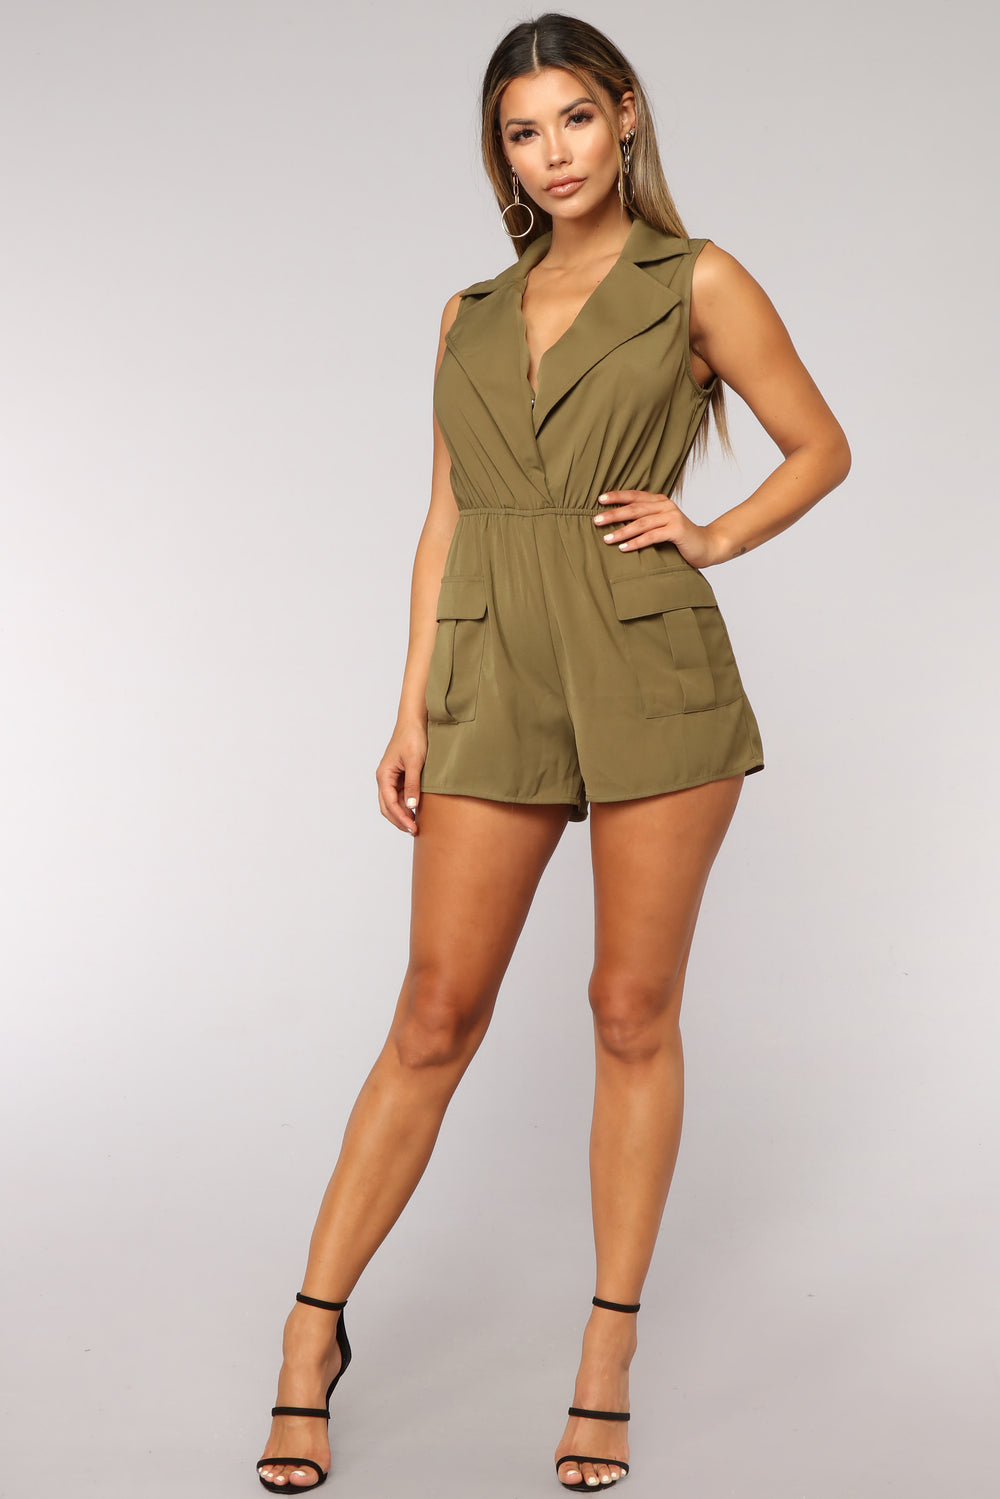 Grounded For Life Cargo Romper - Olive